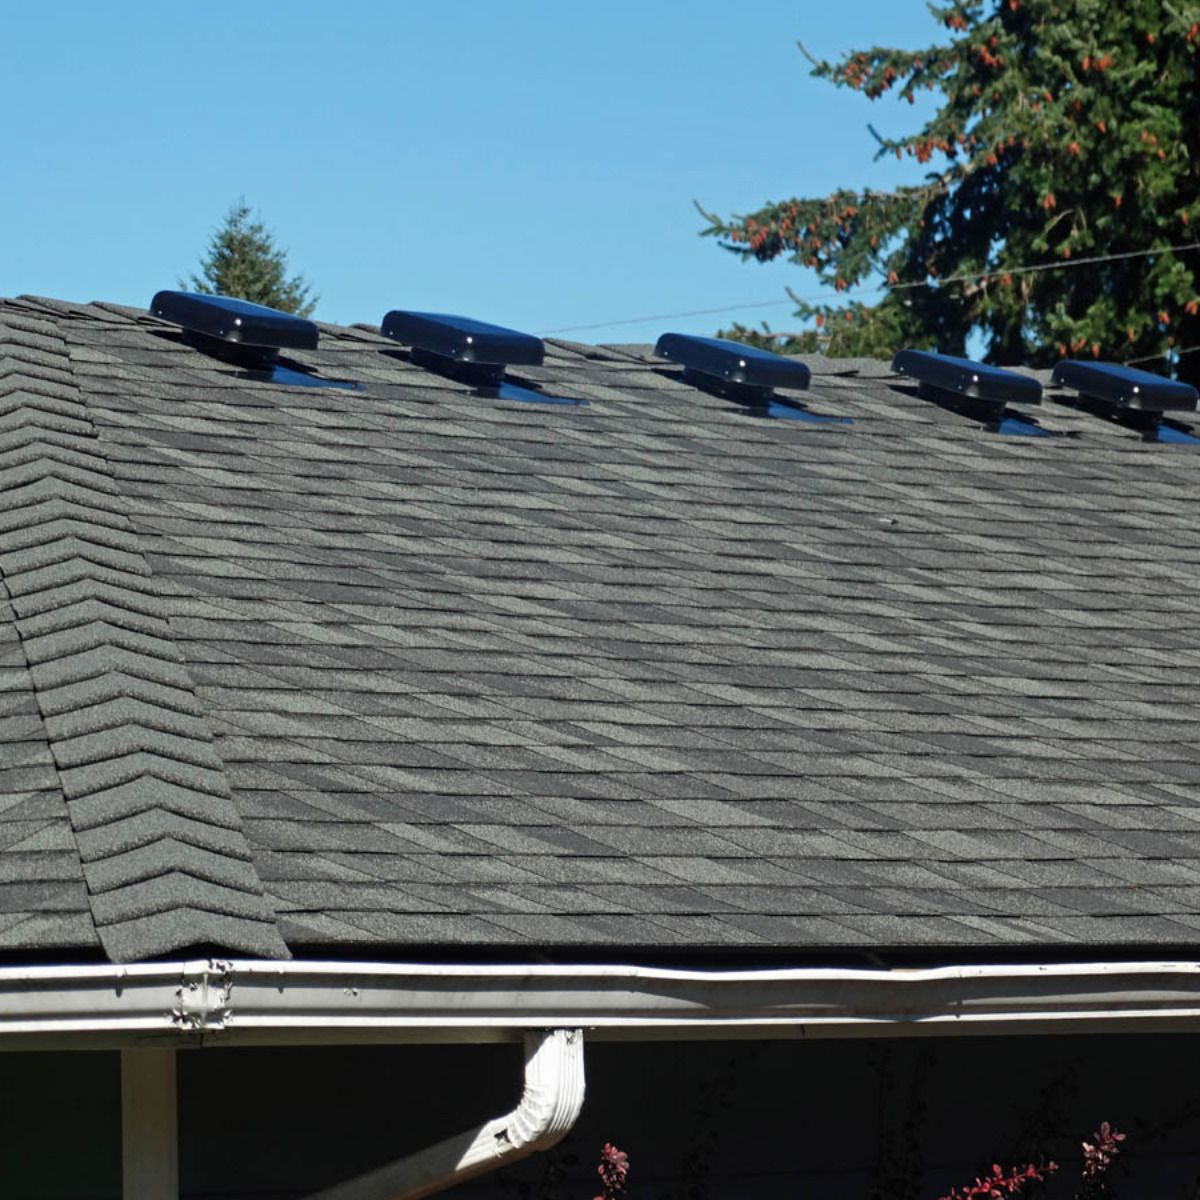 Local Roofers Service And Maintenance Certified Roofing Company Shingle Roof Roofing Roof Repair Roof Maintenance